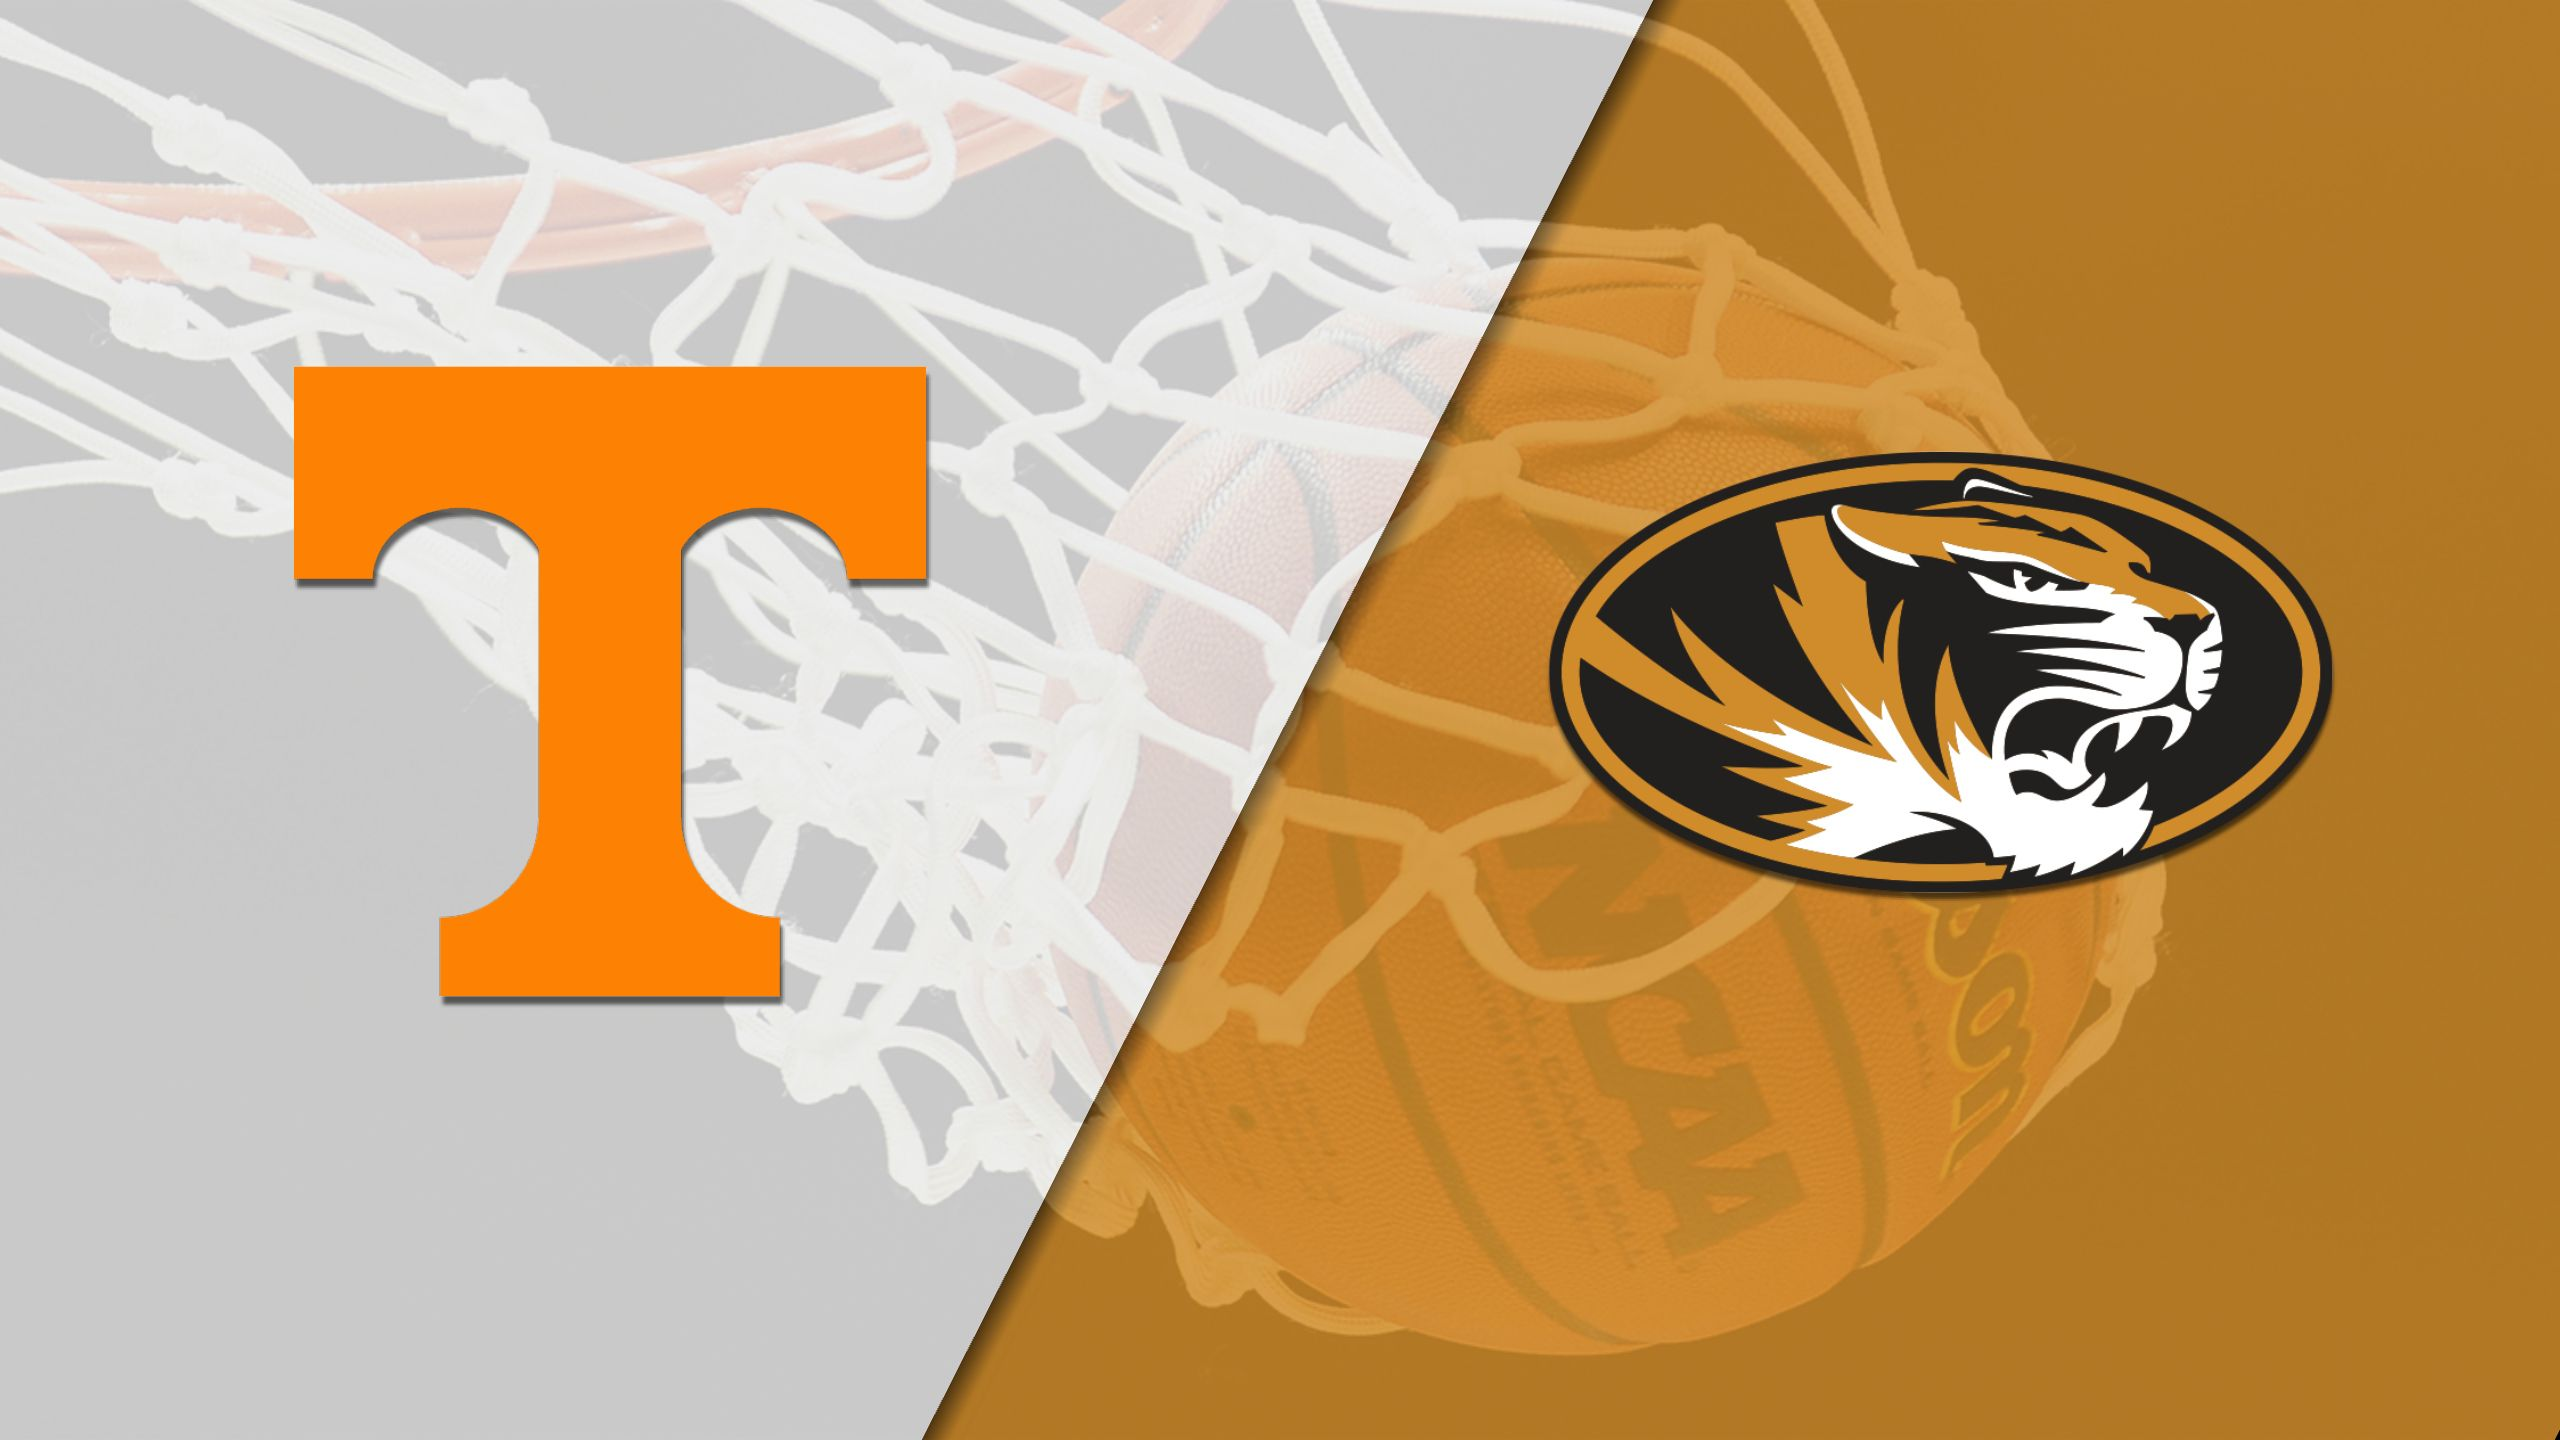 #21 Tennessee vs. Missouri (M Basketball) (re-air)